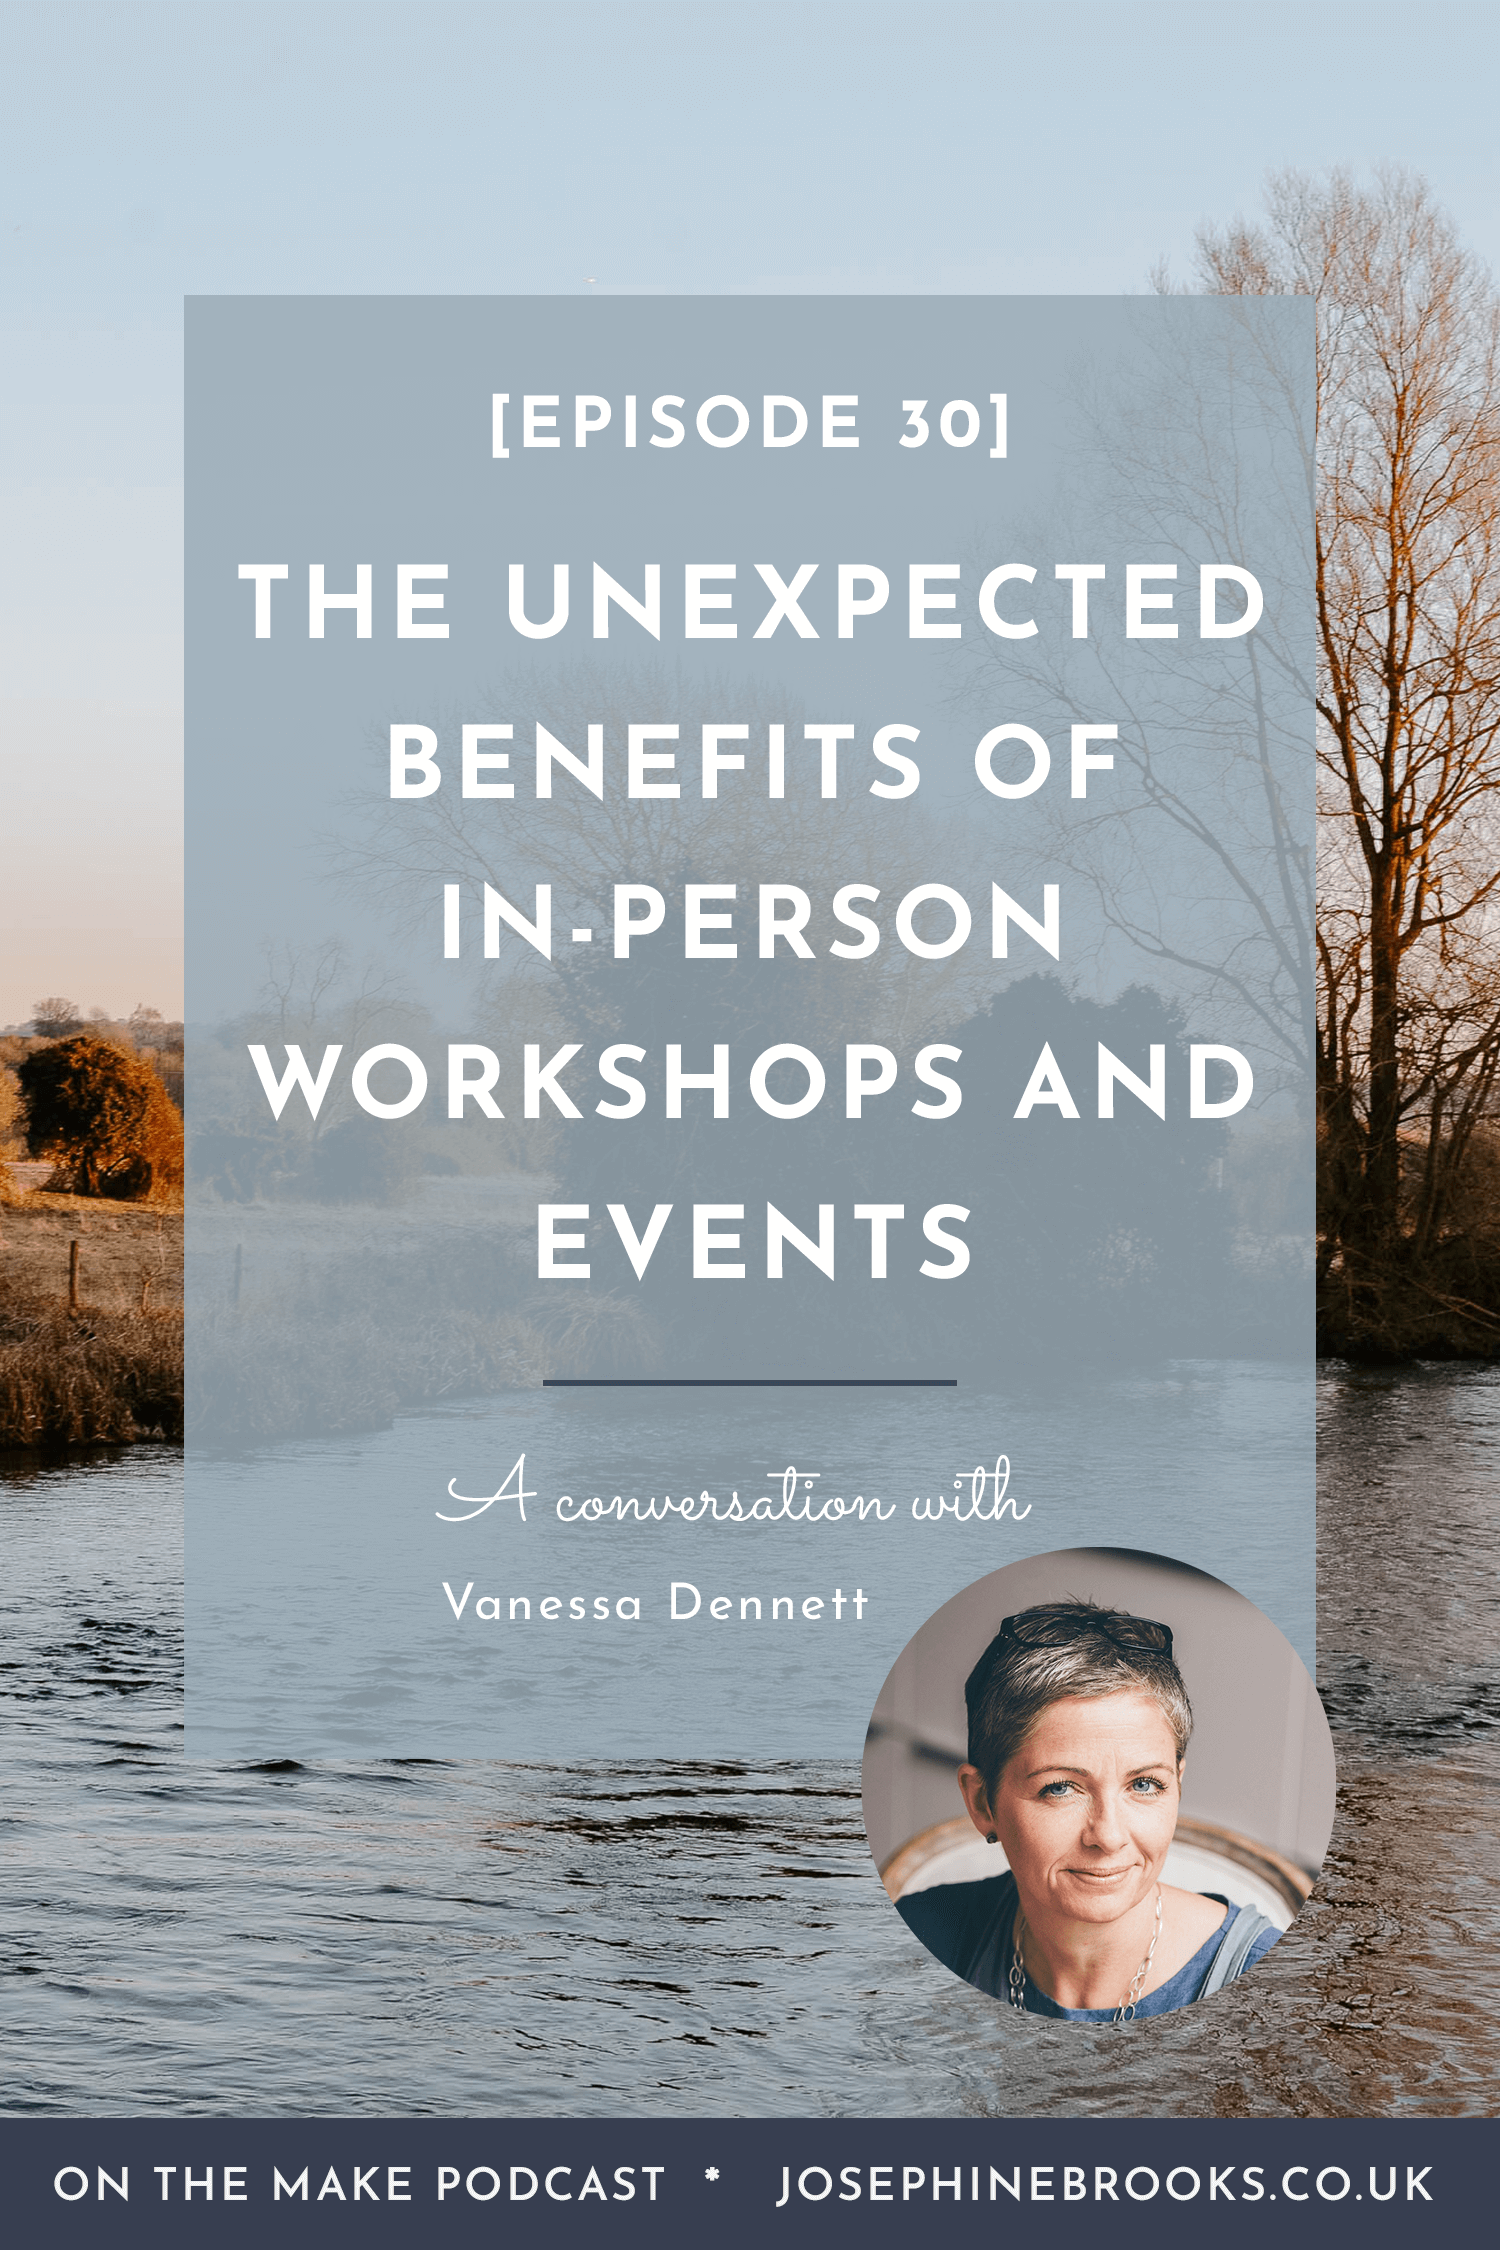 The Unexpected Benefits of in-person Workshops and Events